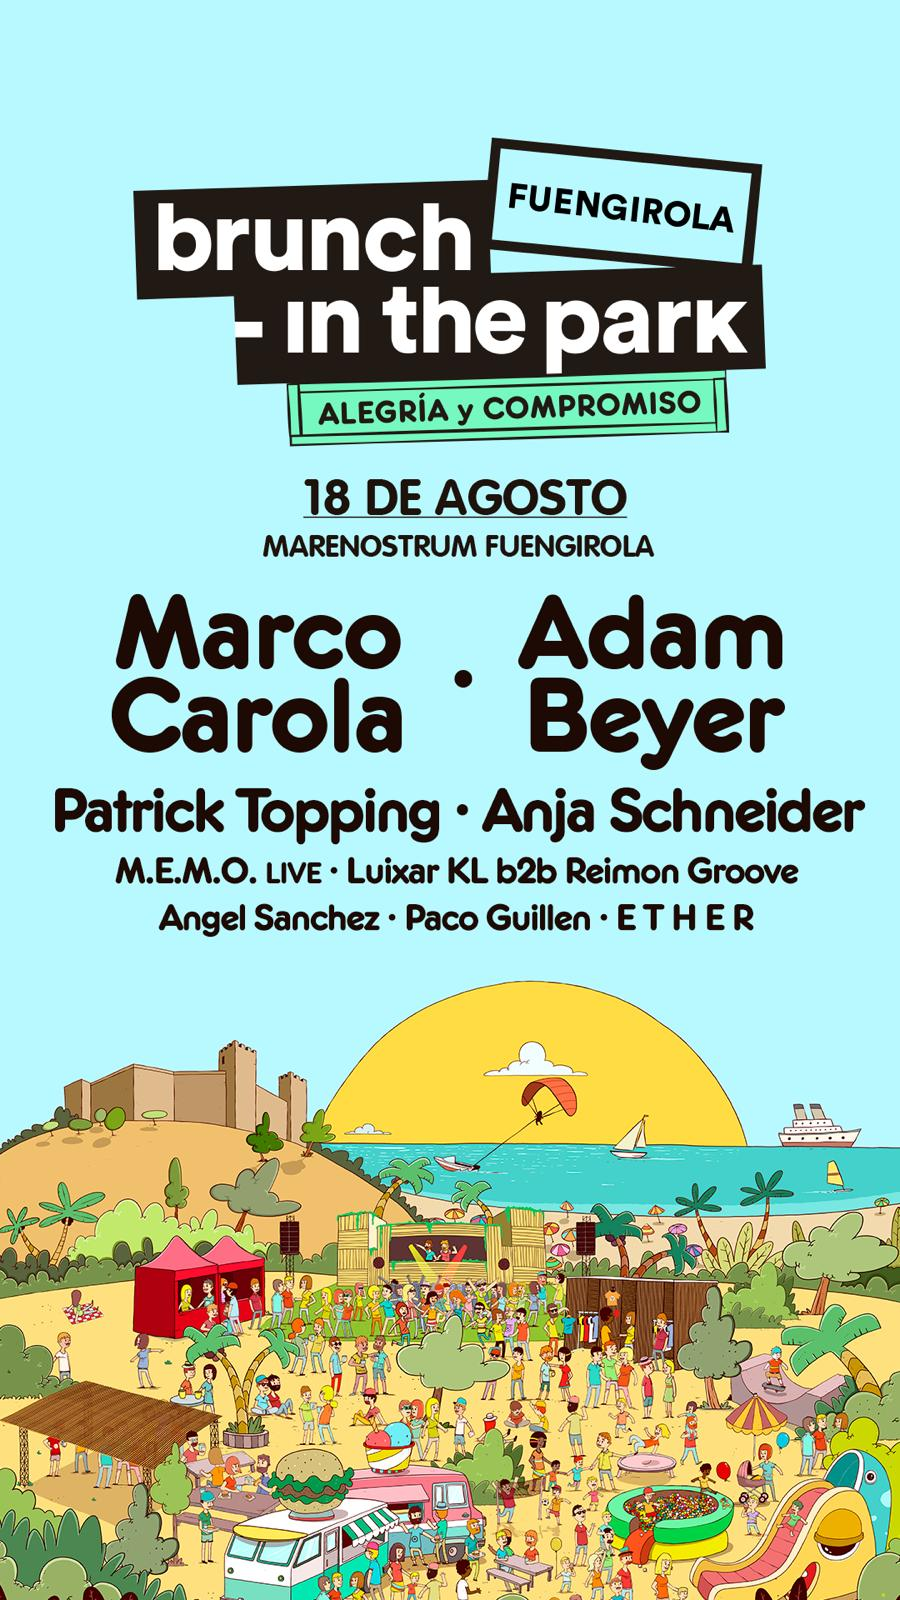 BRUNCH IN THE PARK 2019 FUENGIROLA - Marenostrum